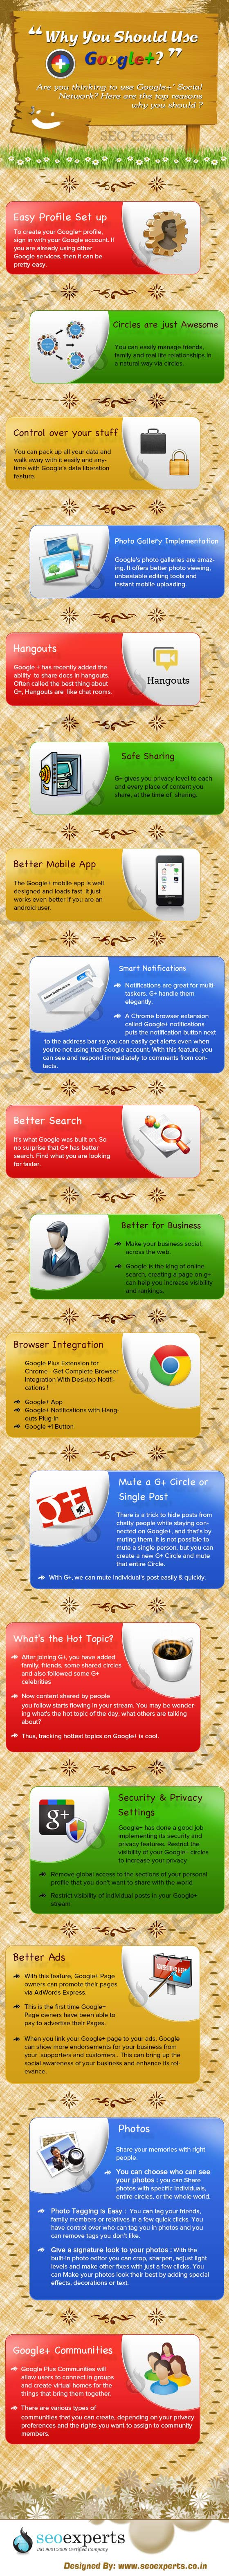 Why Google Plus-Infographic